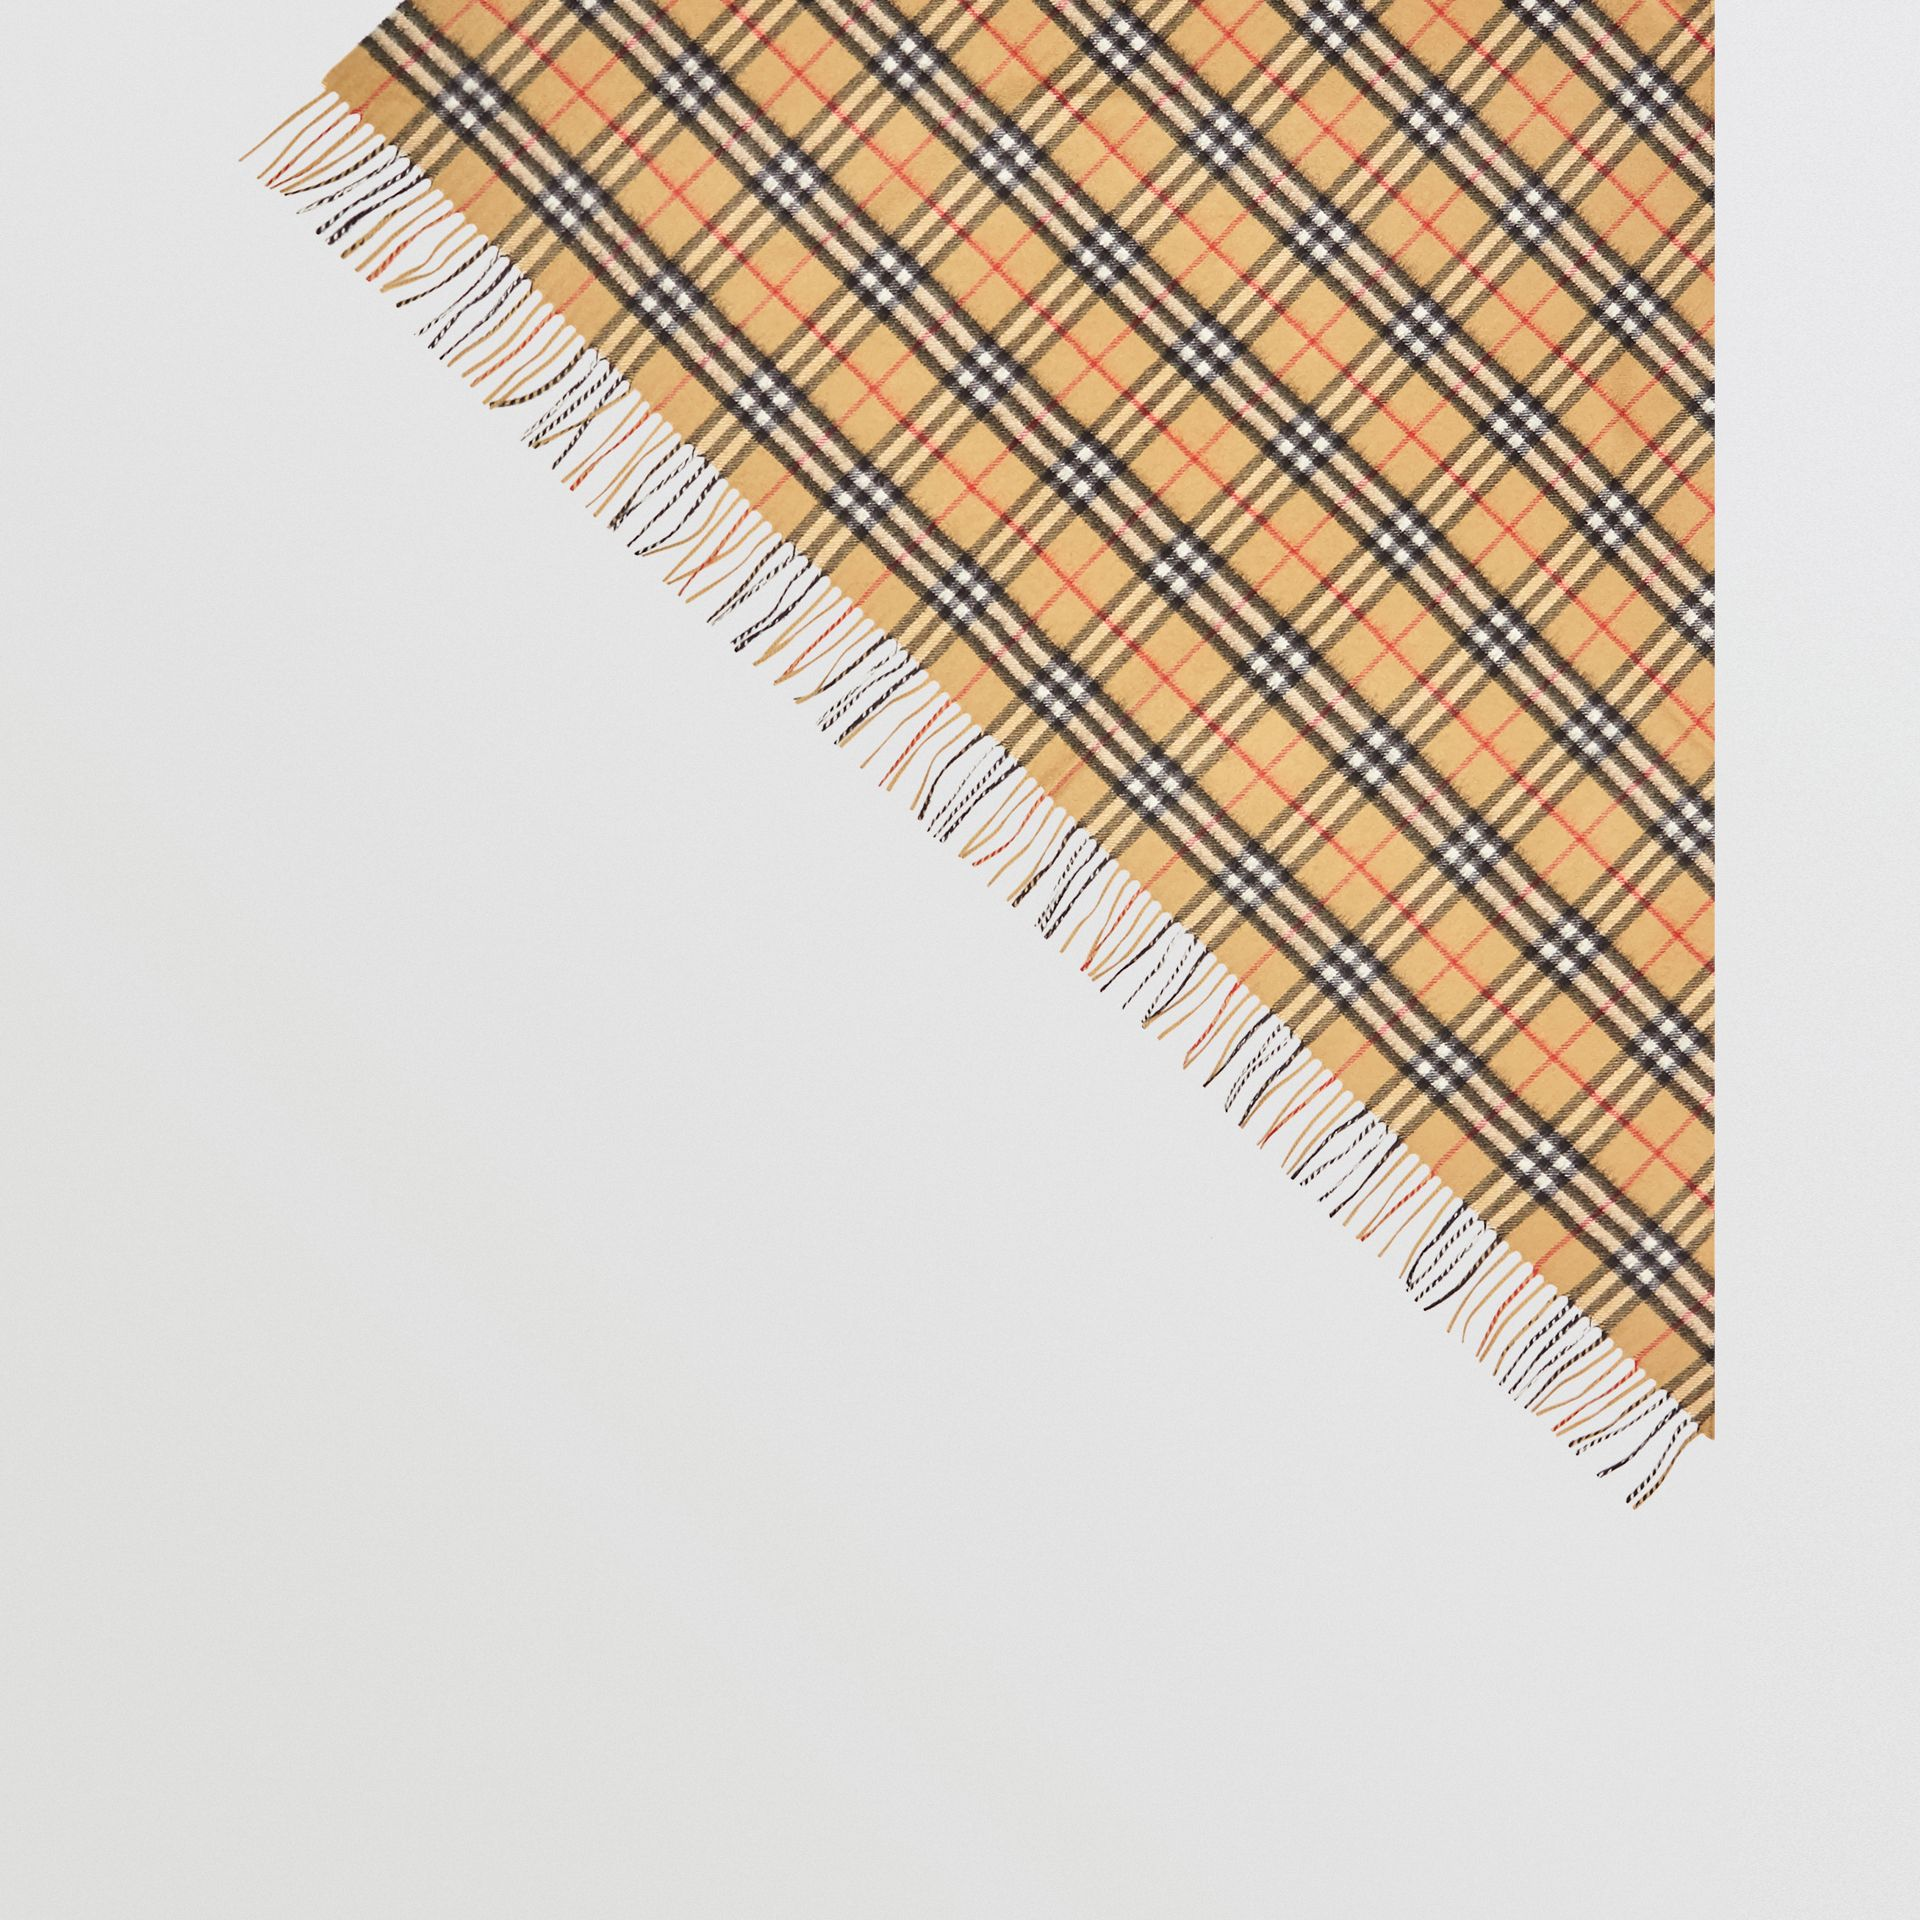 Bandana Burberry en cachemire à motif Vintage check (Jaune Antique) | Burberry Canada - photo de la galerie 4